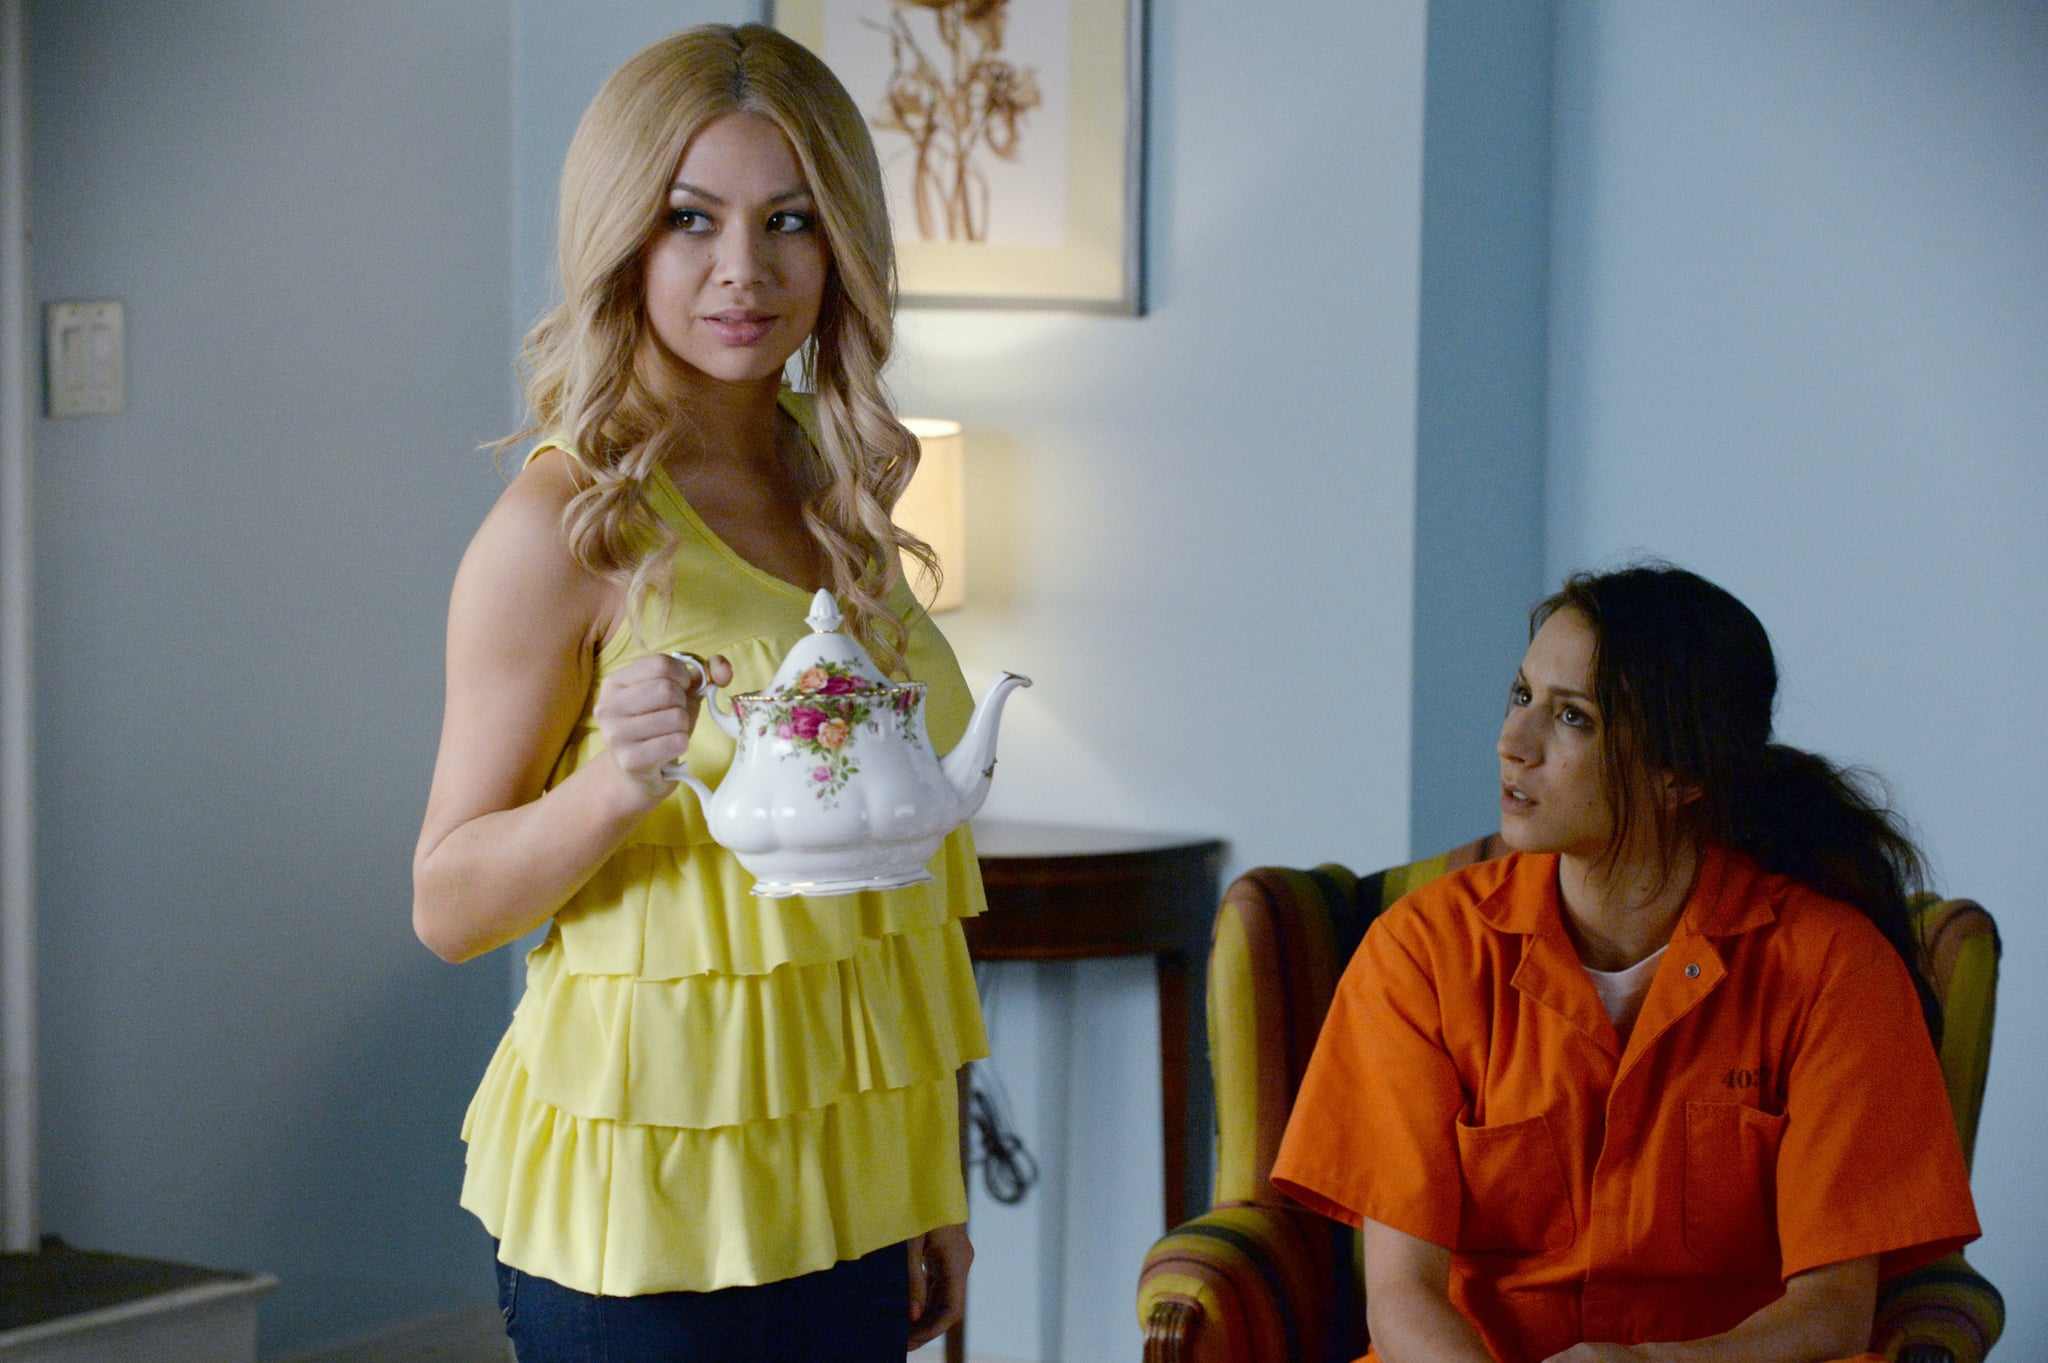 PRETTY LITTLE LIARS, l-r: Janel Parrish, Troian Bellisario in 'Welcome to the Dollhouse' (Season 5, Episode 25, aired March 24, 2015). ph: Eric McCandless/ABC Family/courtesy Everett Collection